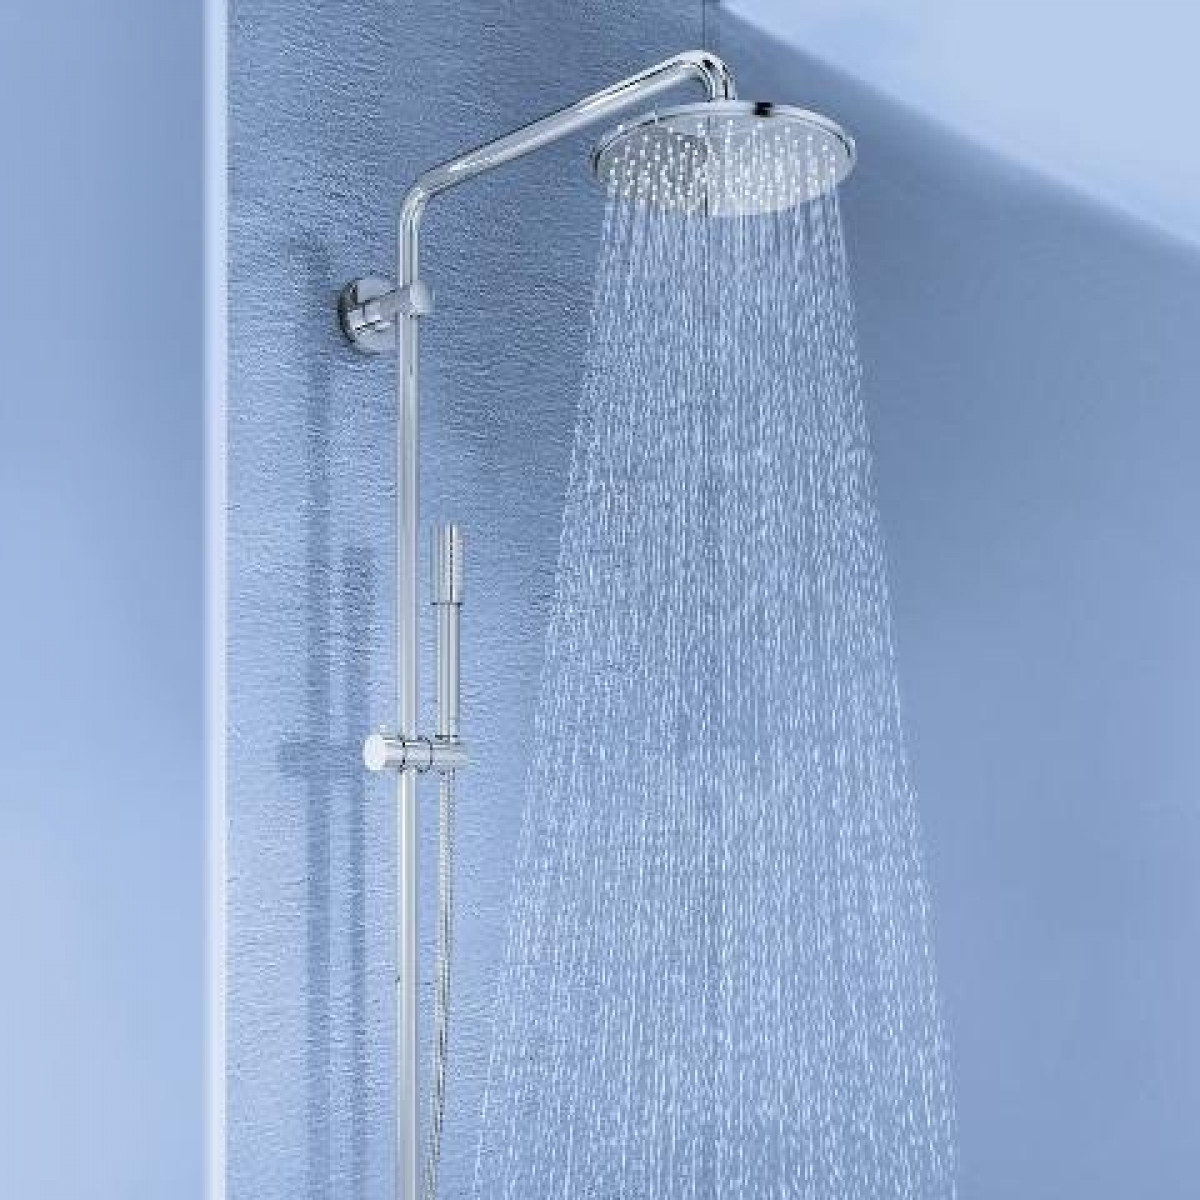 Beliebt Grohe Rainshower 210 Exposed Thermostatic Shower System | 27032001 QJ05